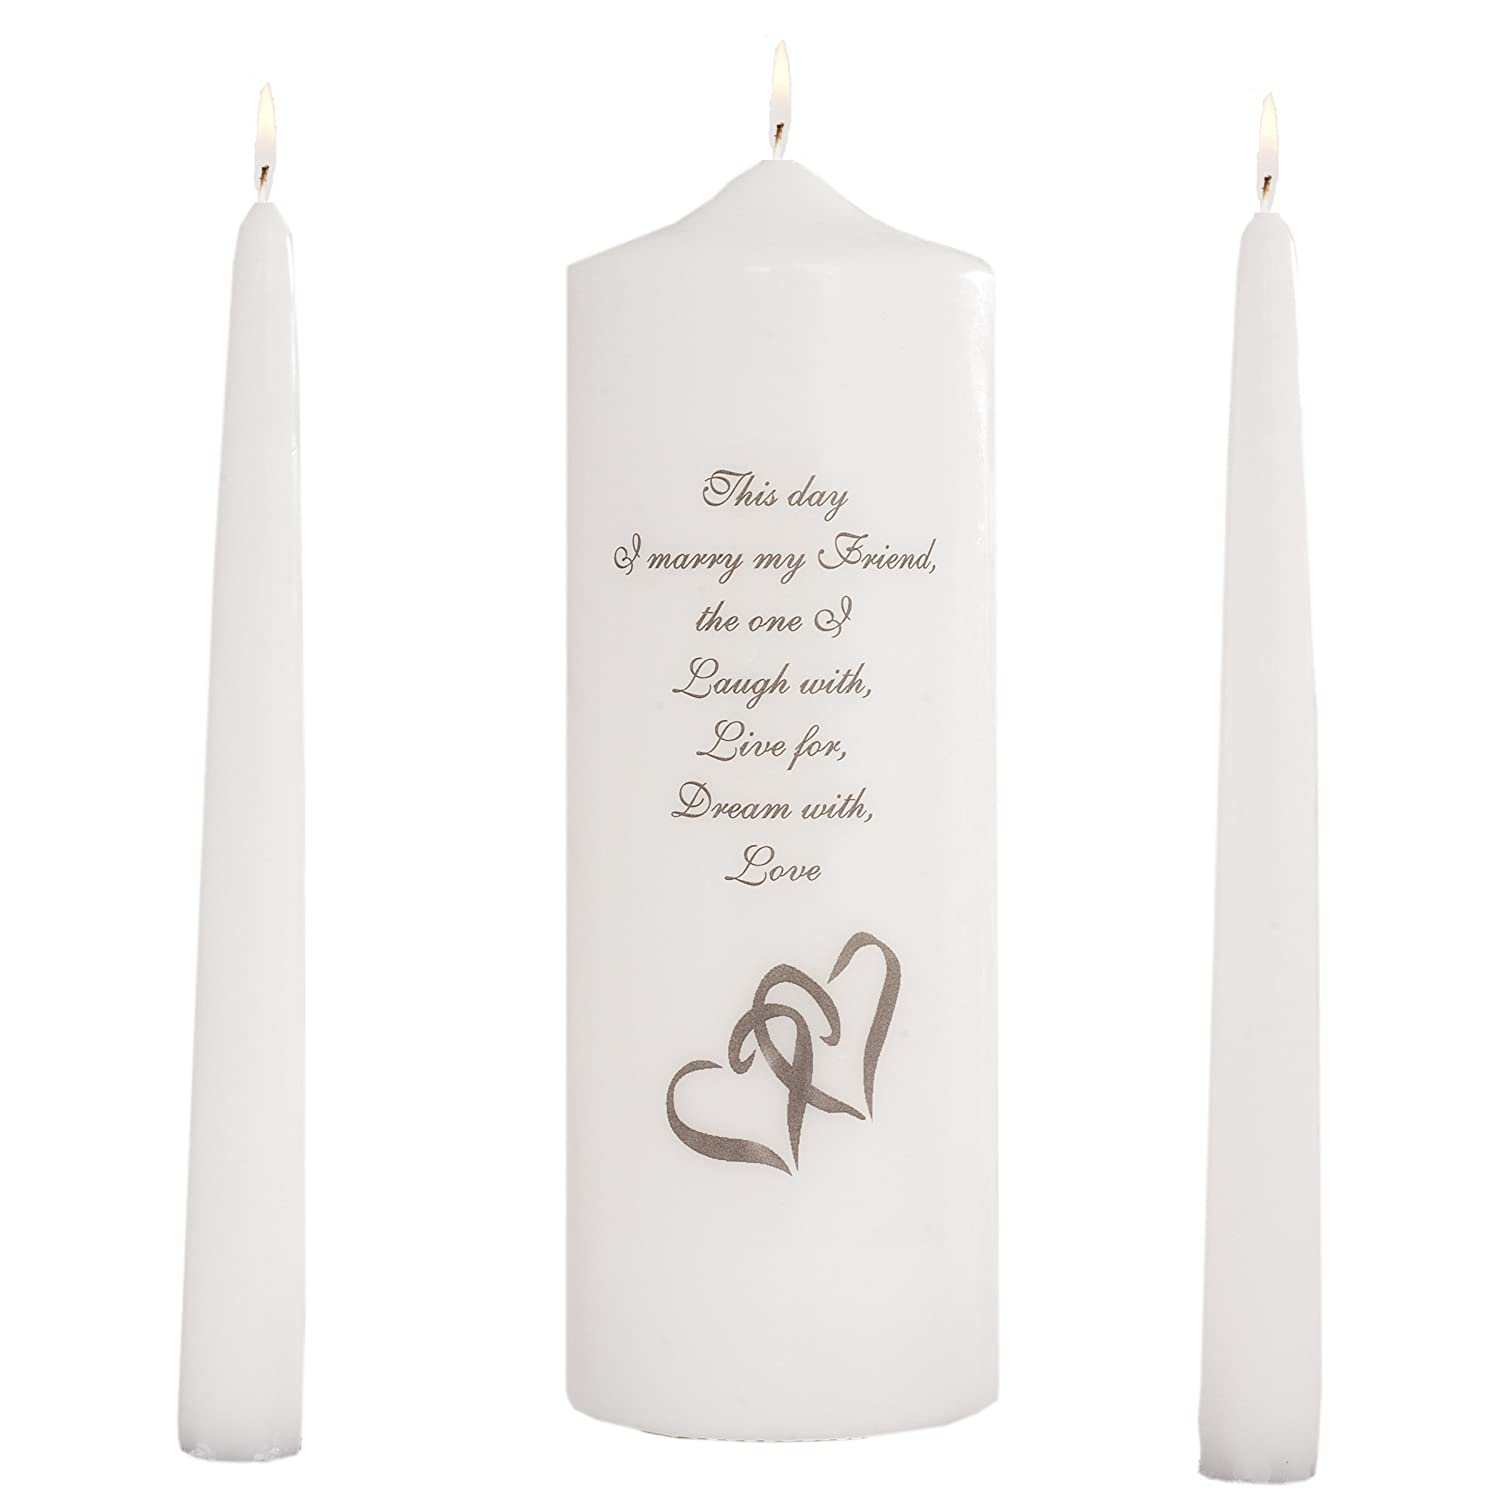 Celebration Candles Wedding Unity Candle Set, with 9-inch Pillar with Double Heart Motif andThis Day I Marry my Friend Verse, with 10-inch Taper Candles, White Inc. A-WSA01A